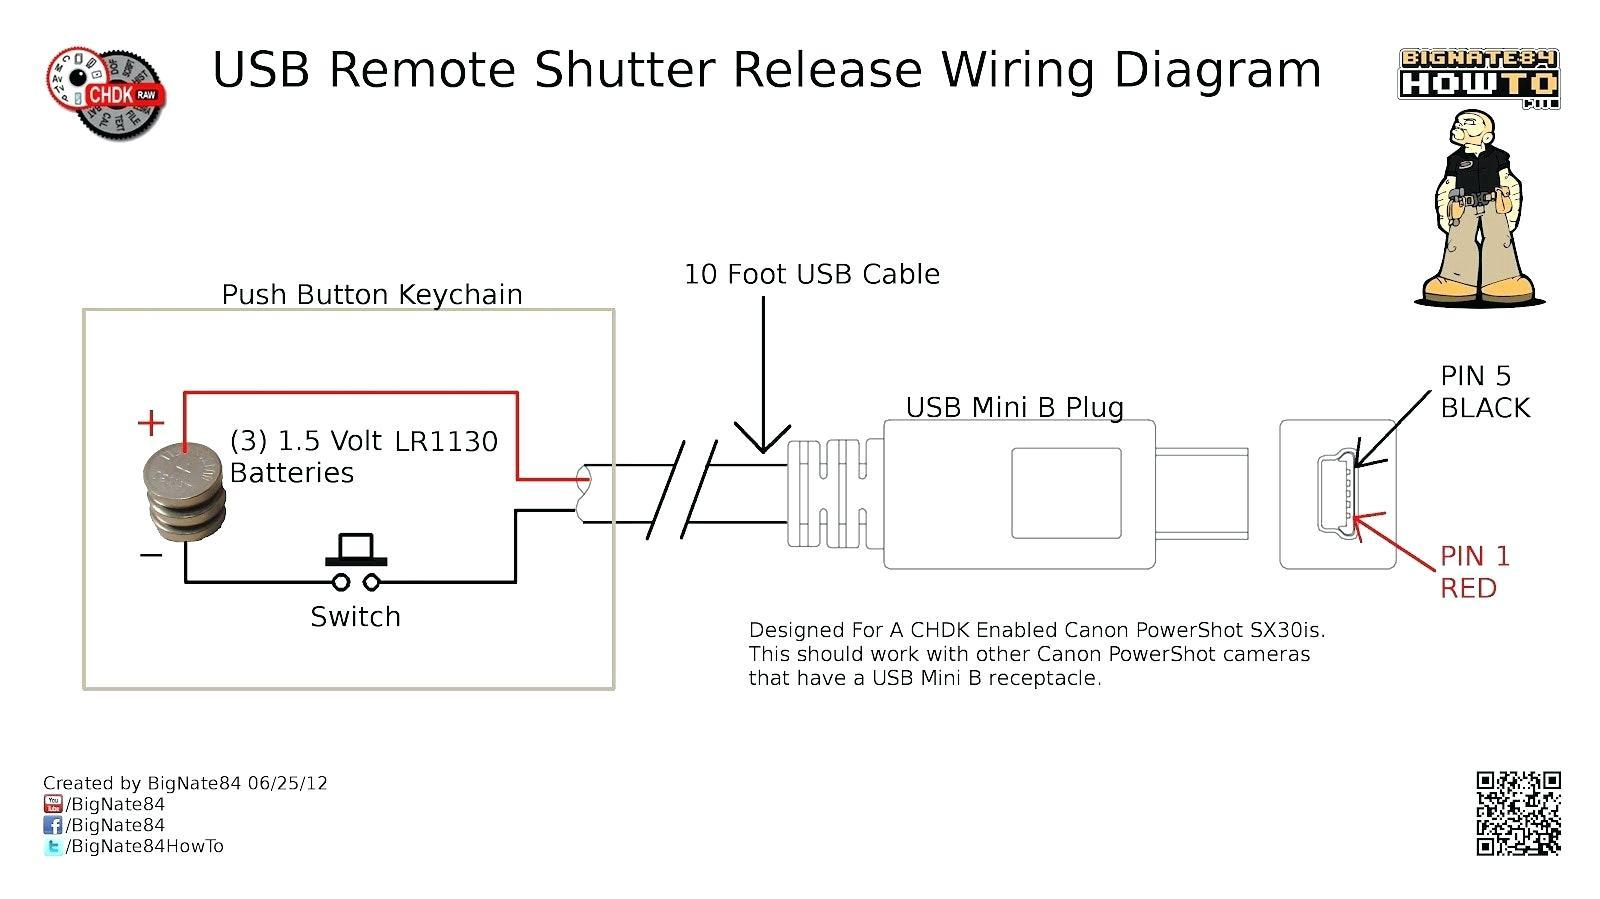 Usb    Mobius    Wiring       Diagram         USB       Wiring       Diagram